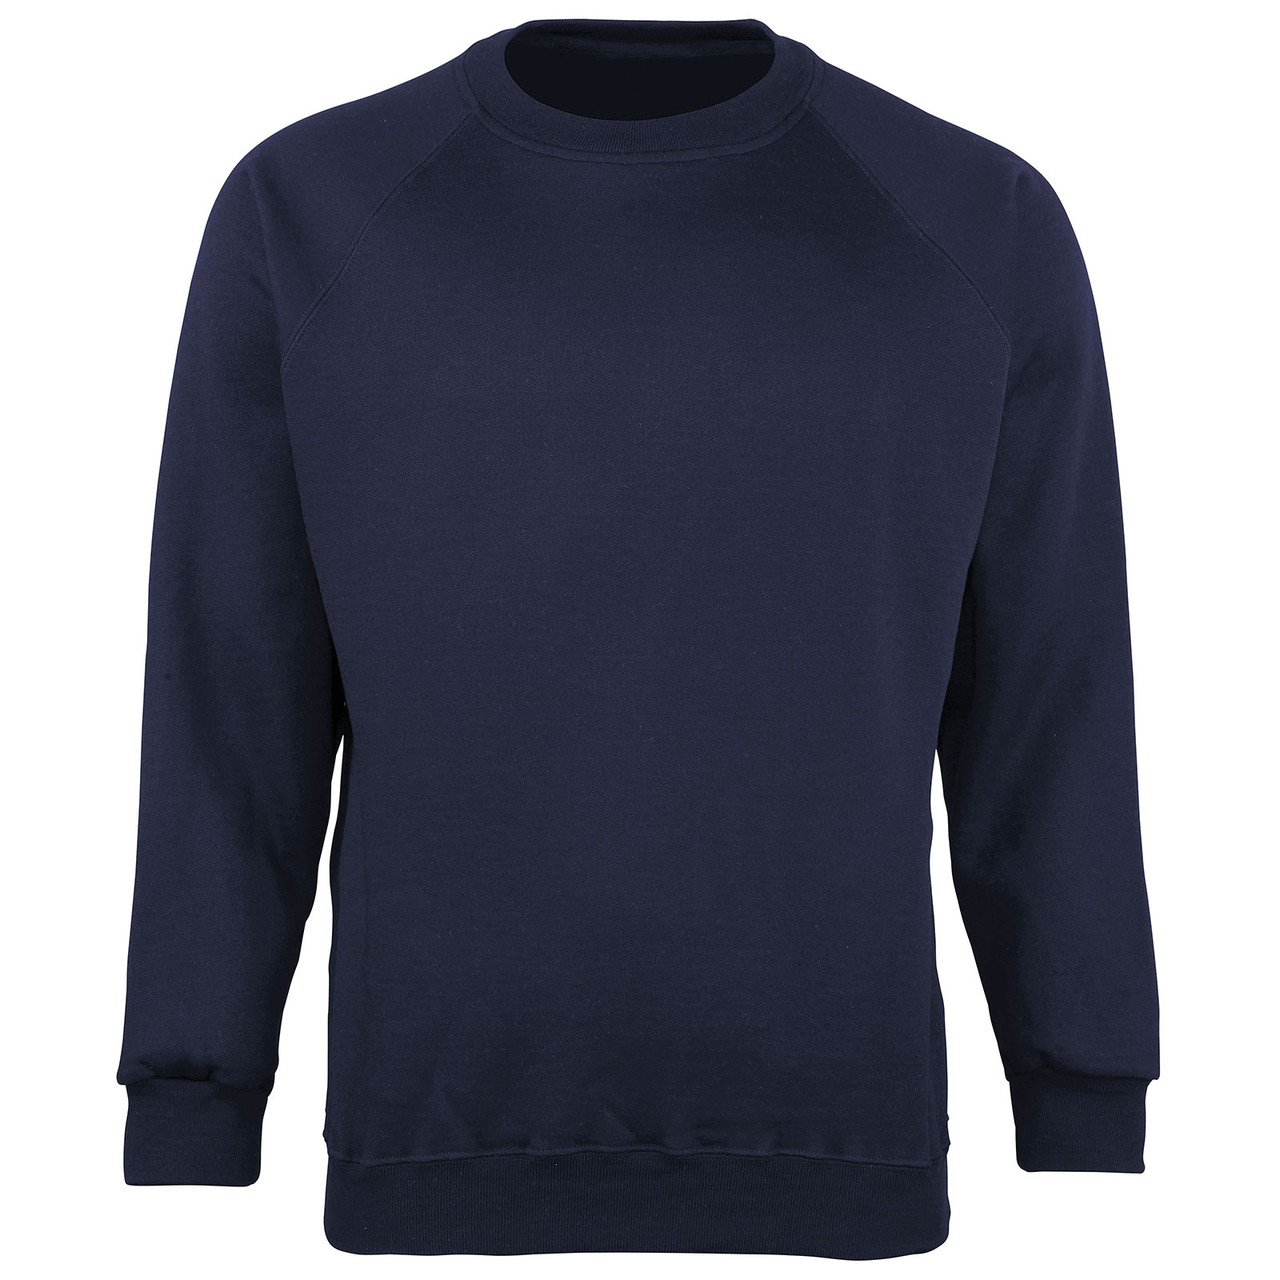 Organic Cotton School Sweatshirt - Navy